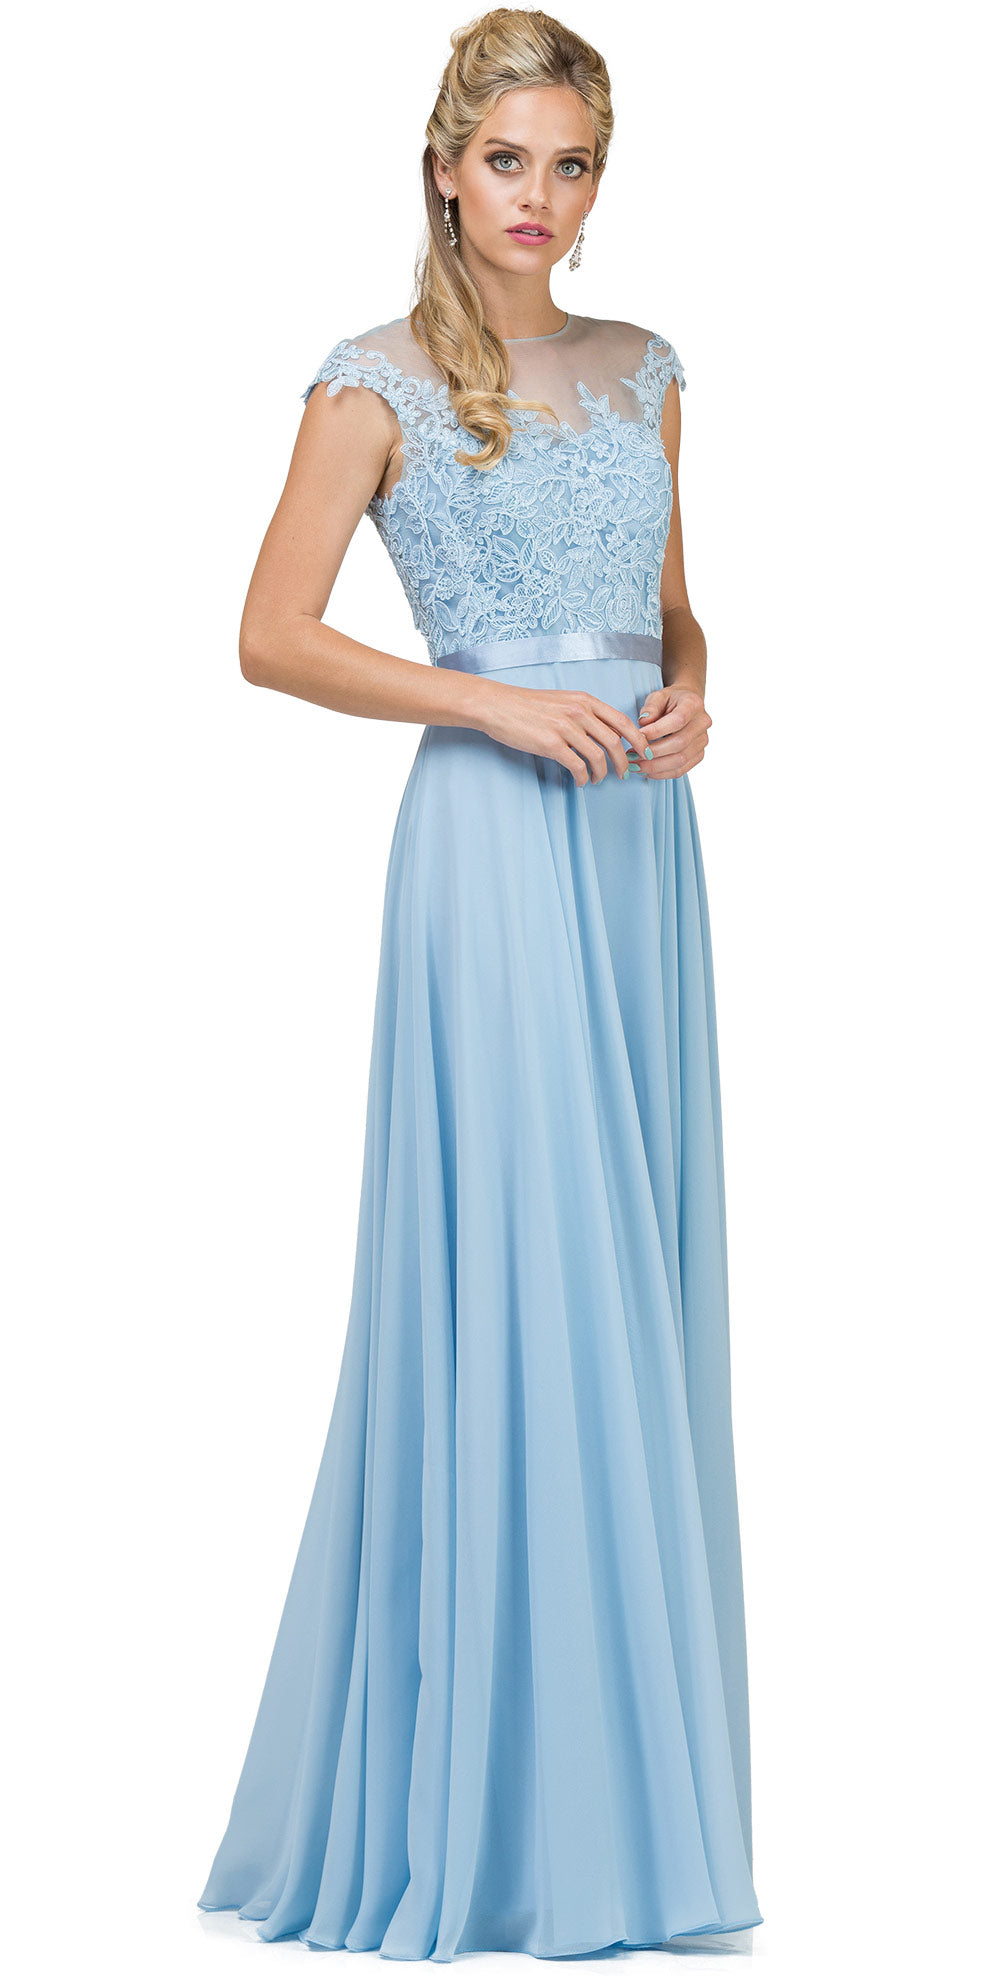 Main image of Embroidered Mesh Bodice Long Chiffon Prom Formal Dress